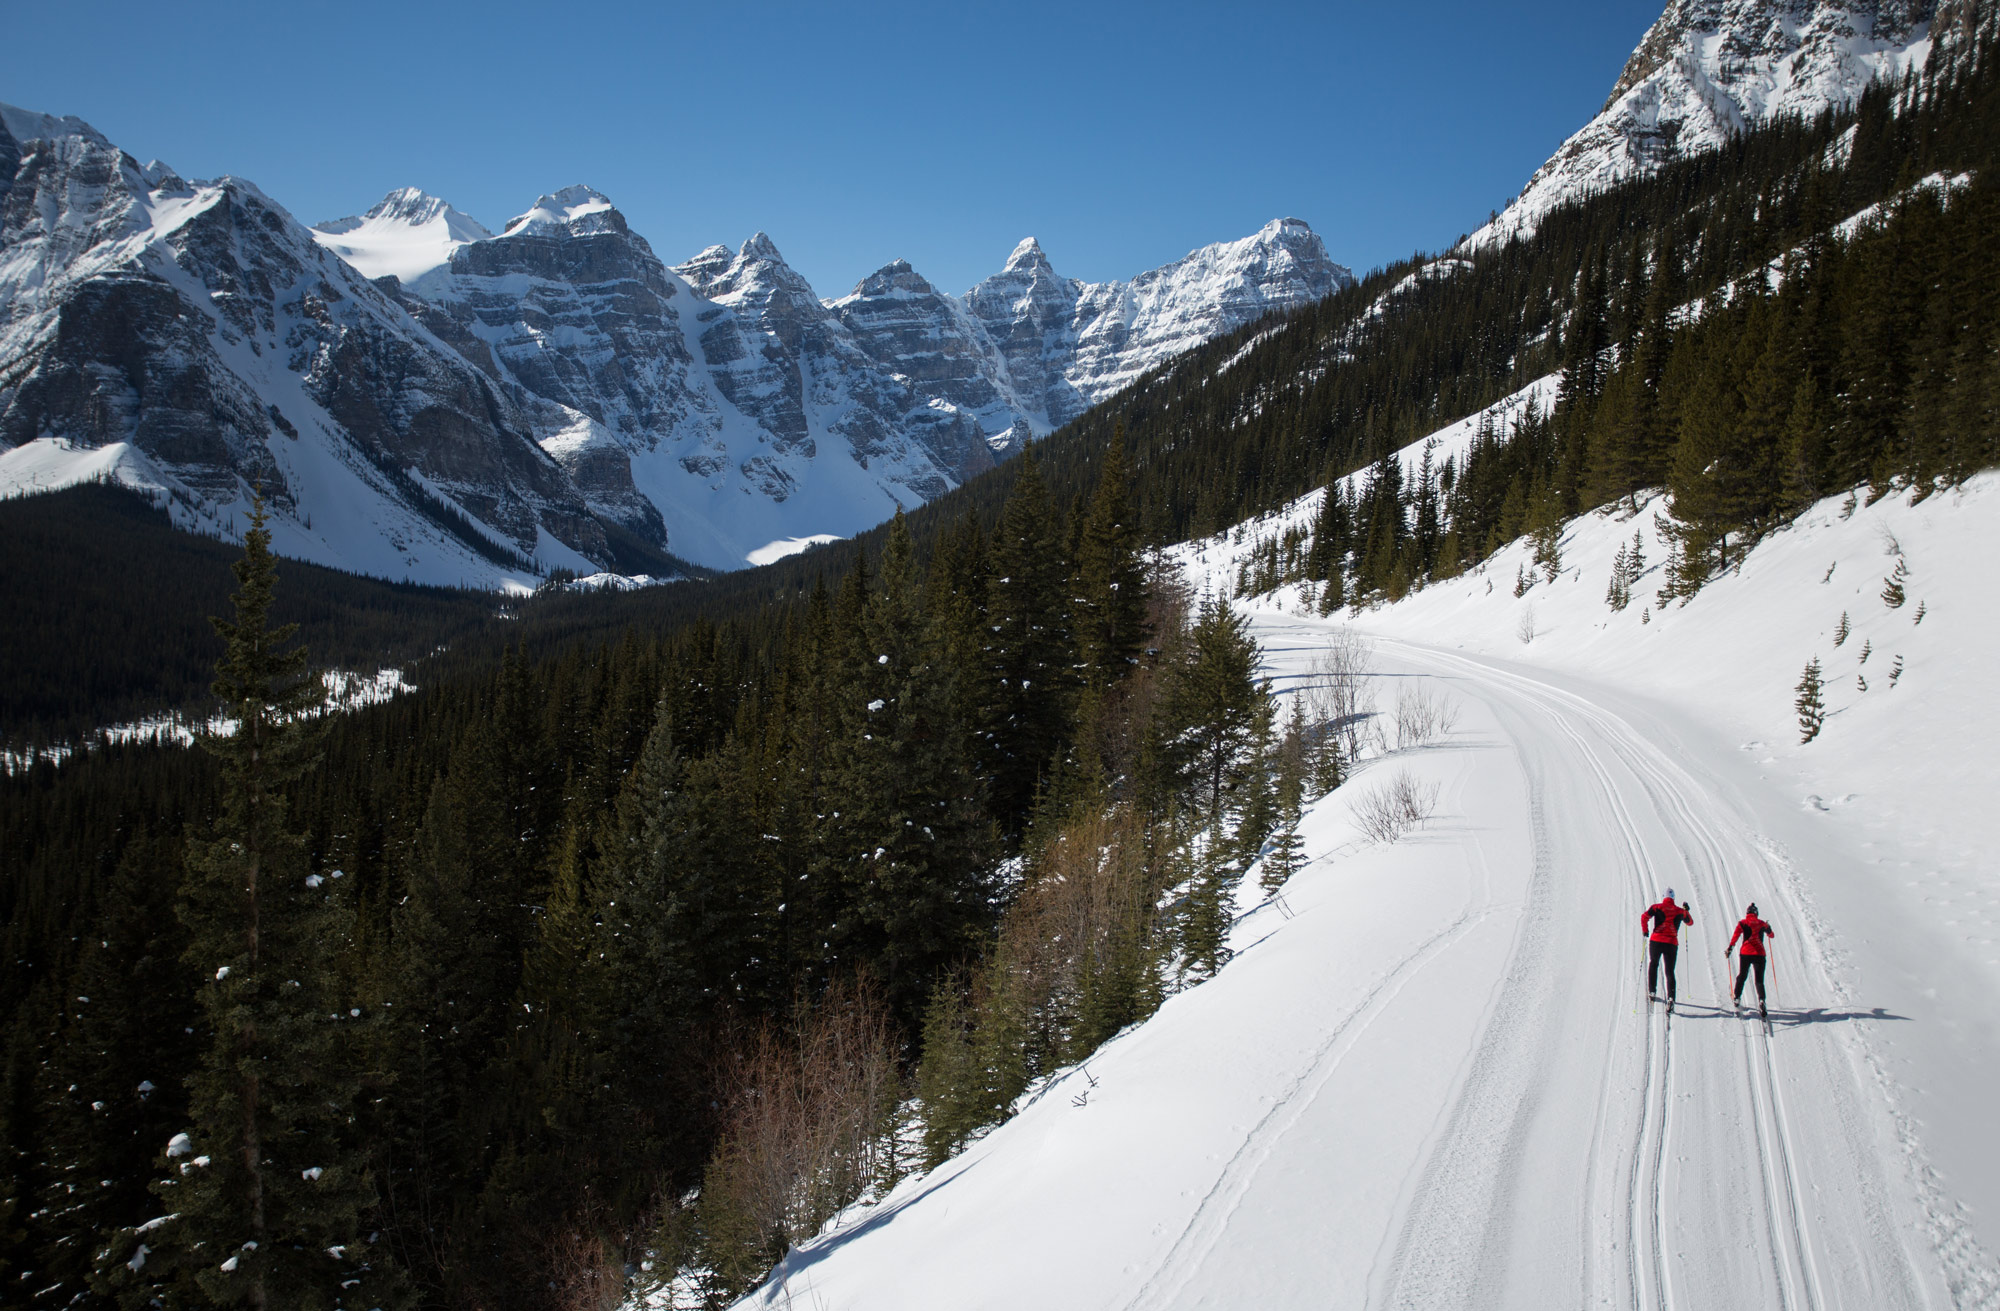 Cross country skiing in Banff National Park is a fantastic way to experience the beauty of winter in the Canadian Rocky Mountains